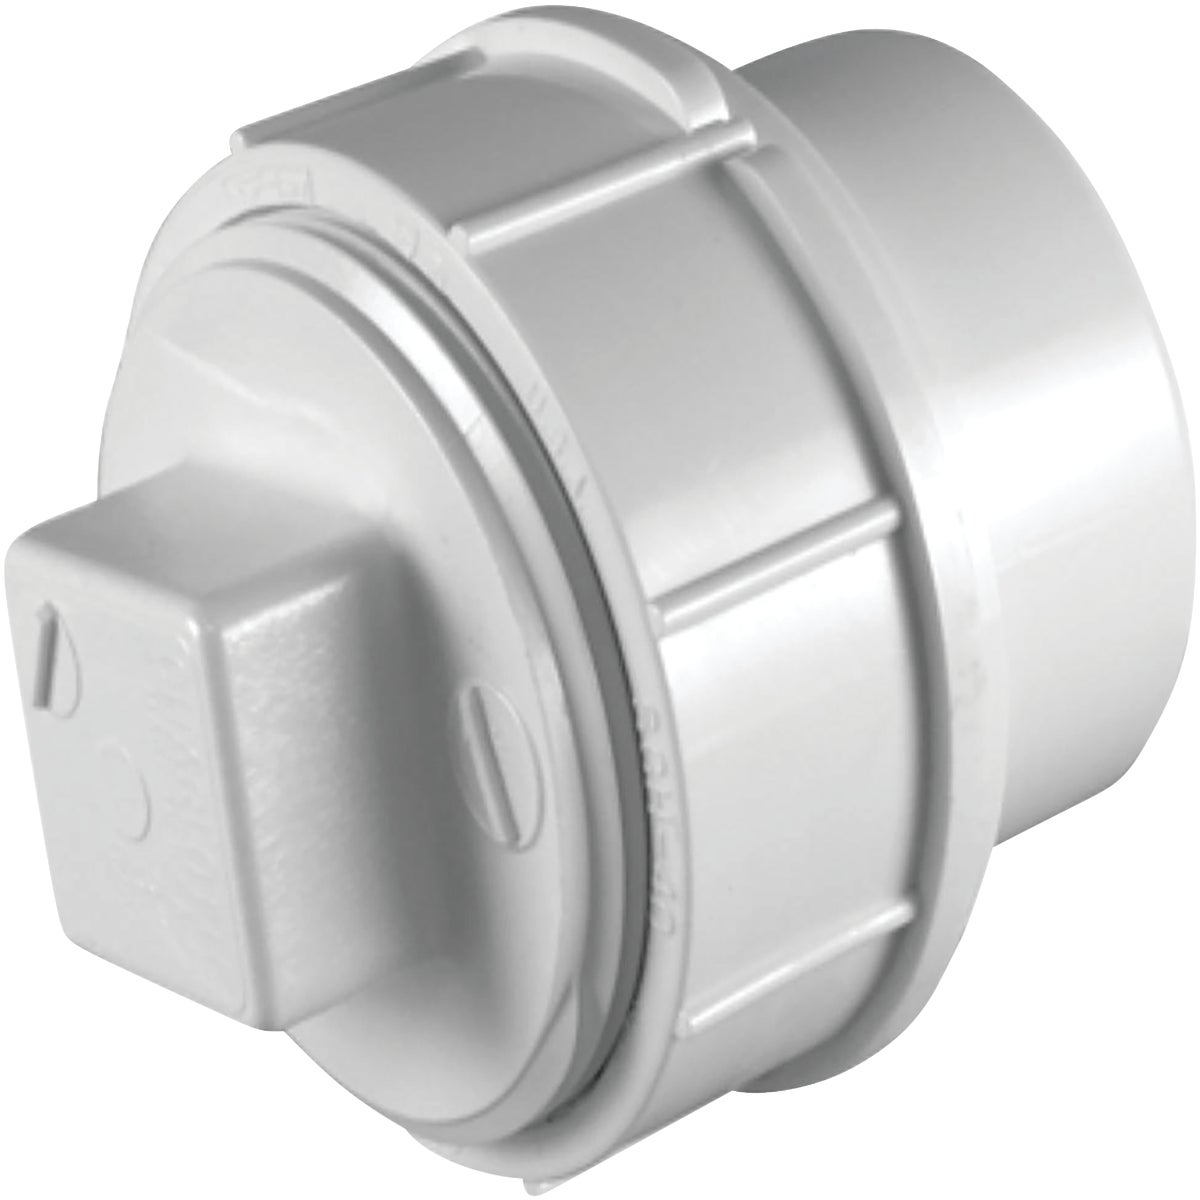 """3"""" SC30 CLEANOUT FITTING - 61630 by Genova Inc"""